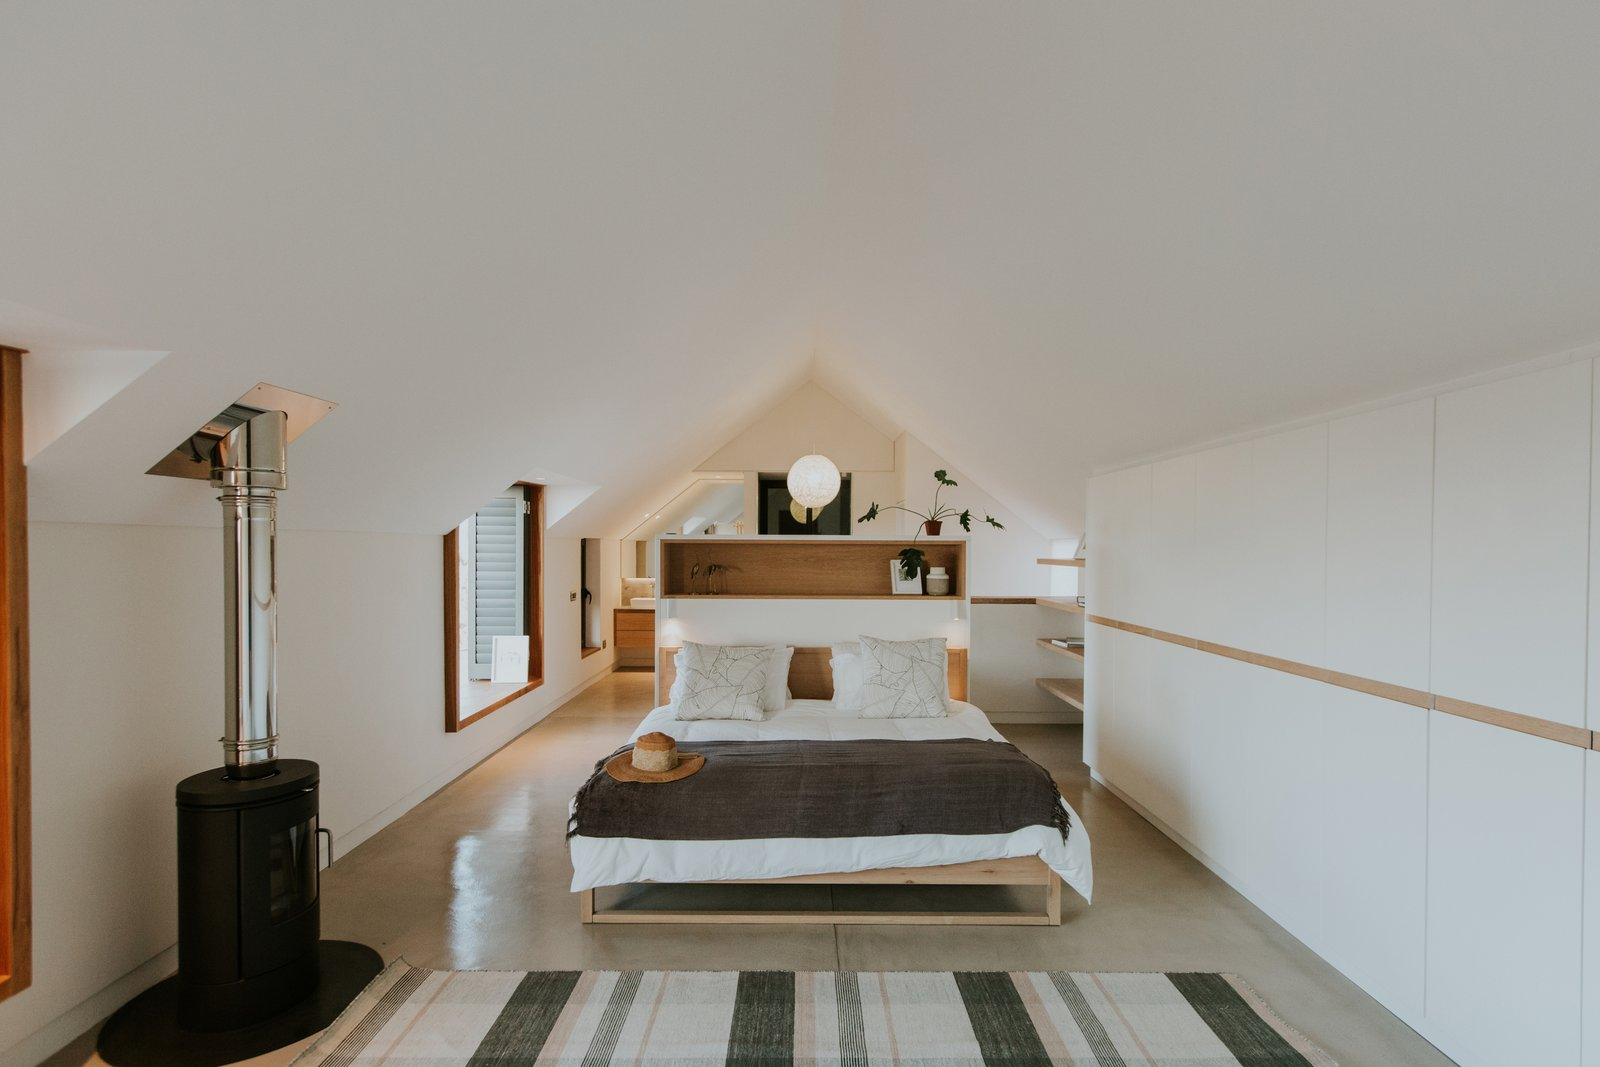 Bedroom, Concrete, Bed, Pendant, Rug, Shelves, and Table On the upper floor, the peaked roof form is revealed. A built-in headboard provides some separation between the functional spaces within the suite.  Best Bedroom Shelves Pendant Concrete Photos from An Inviting South African Cottage Embraces its Seaside Locale